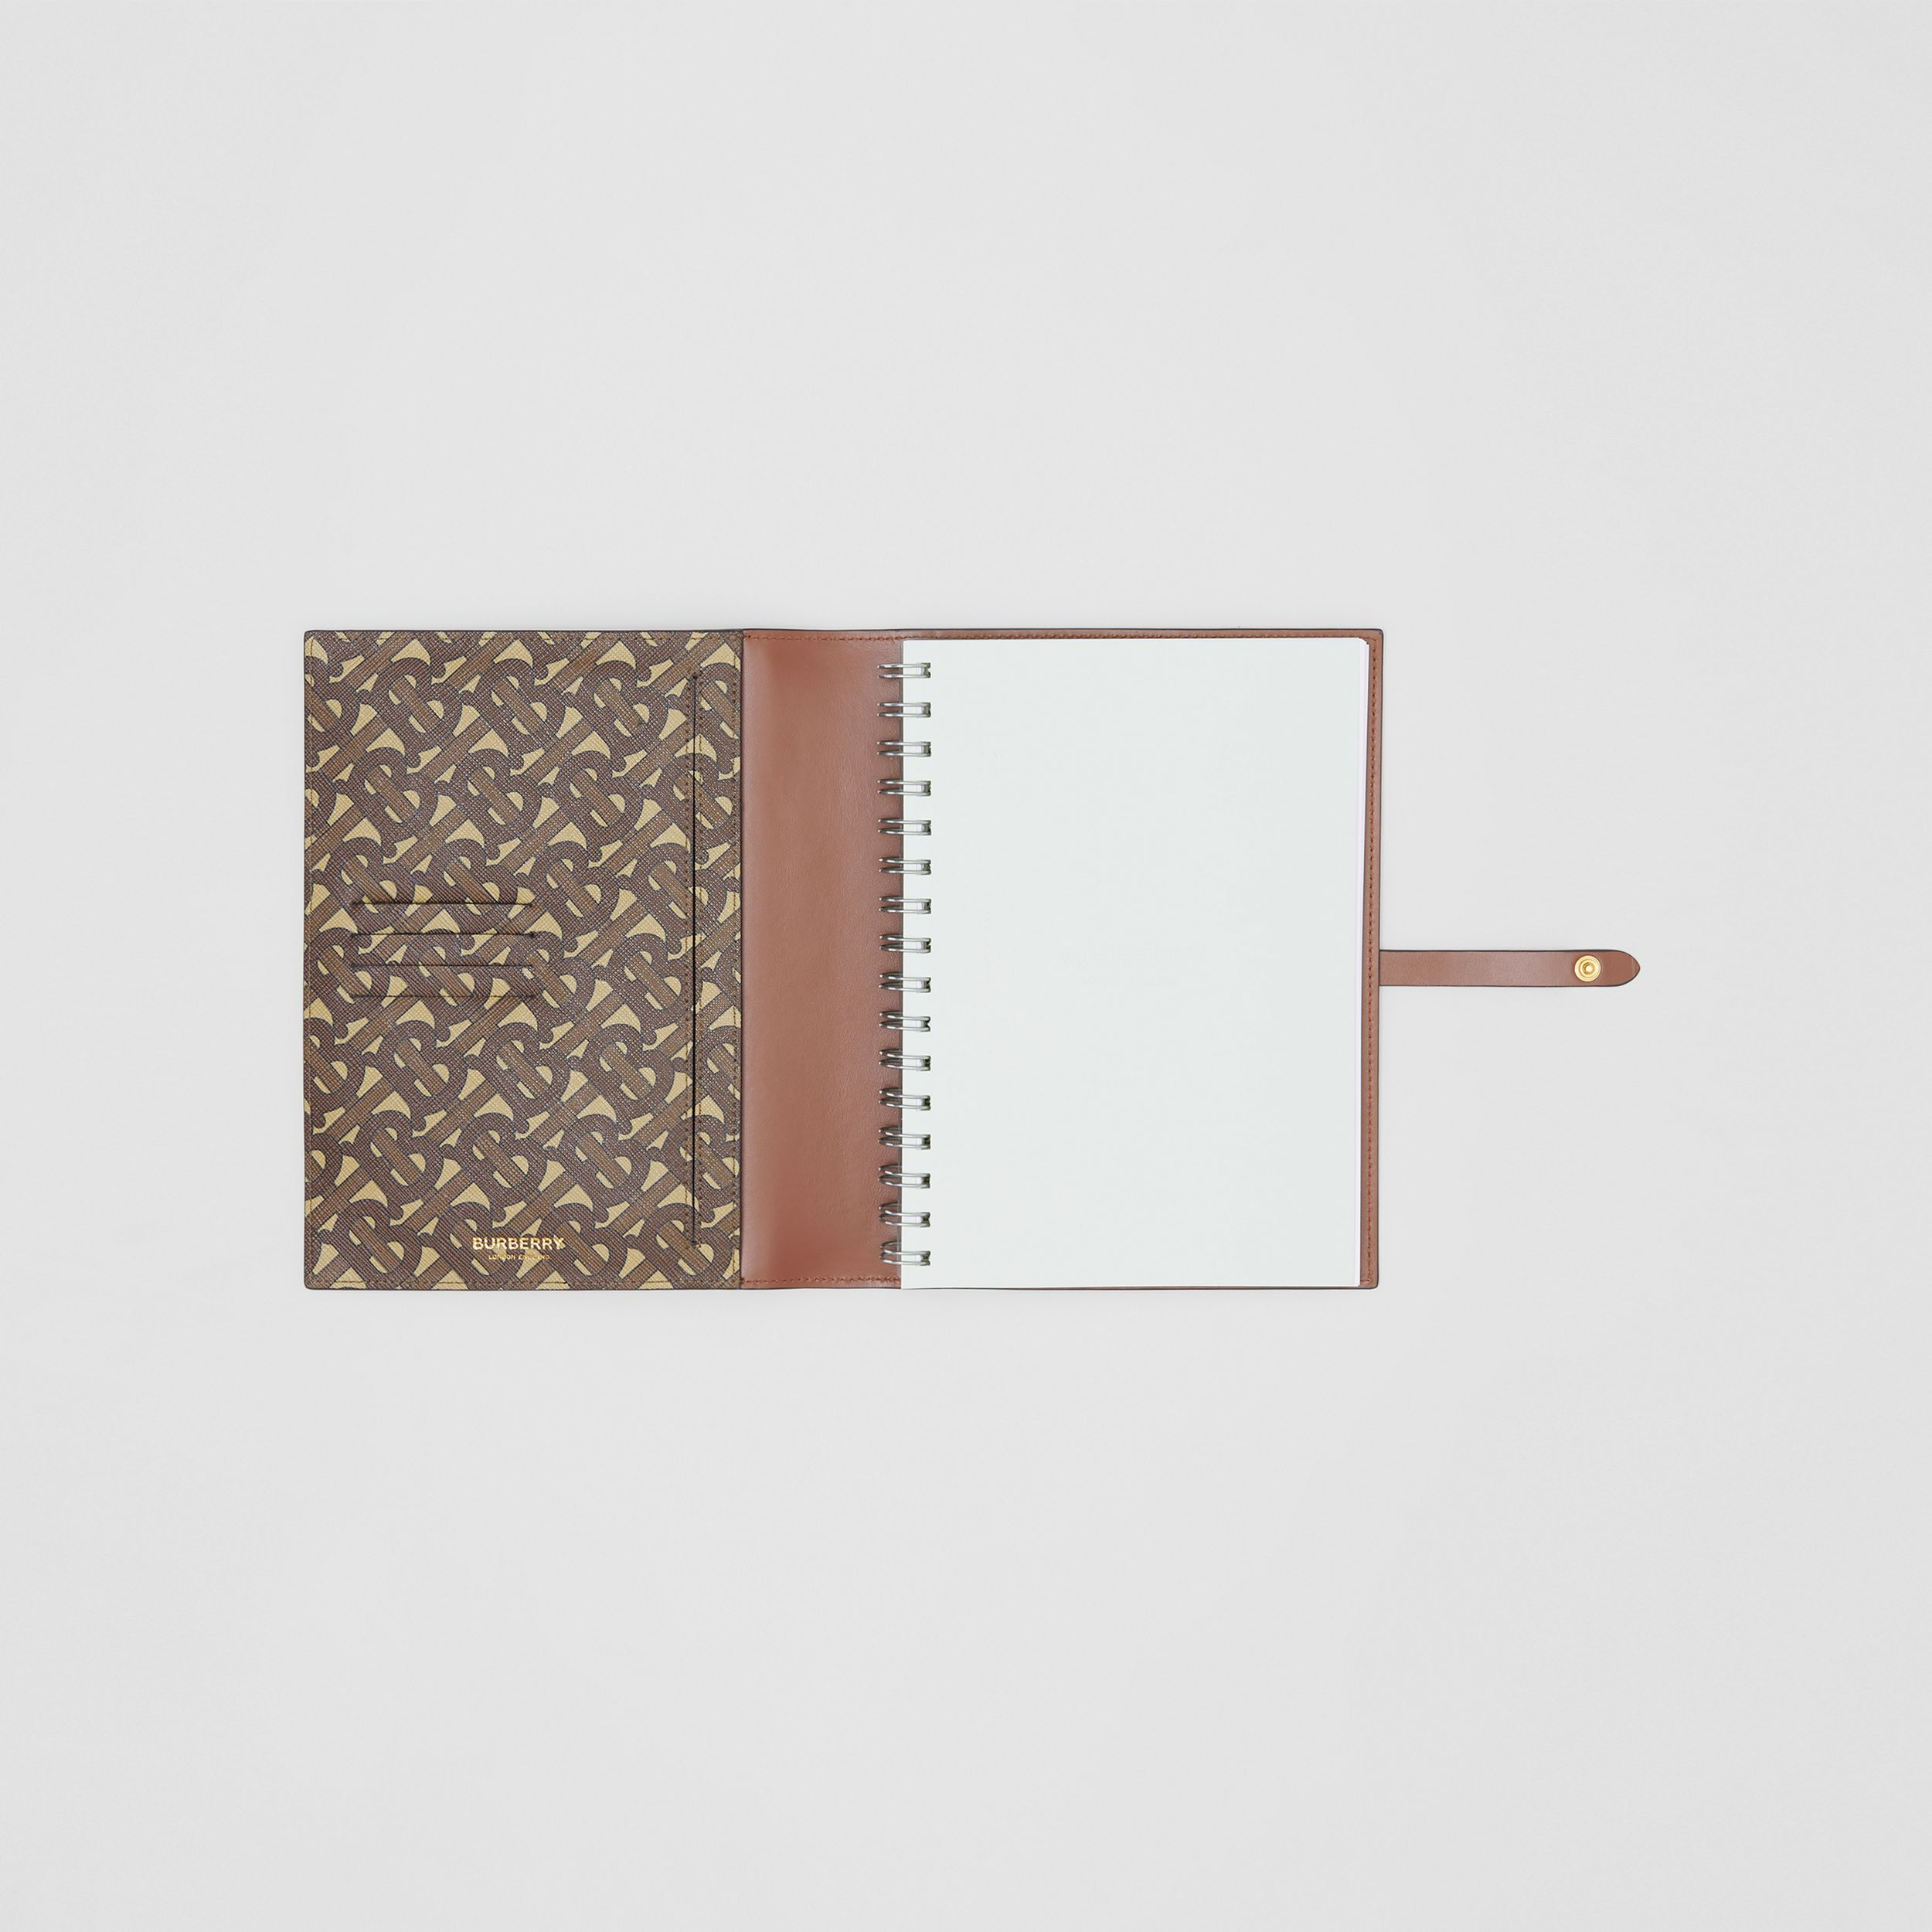 Monogram Print E-canvas Notebook Cover in Bridle Brown | Burberry Australia - 3